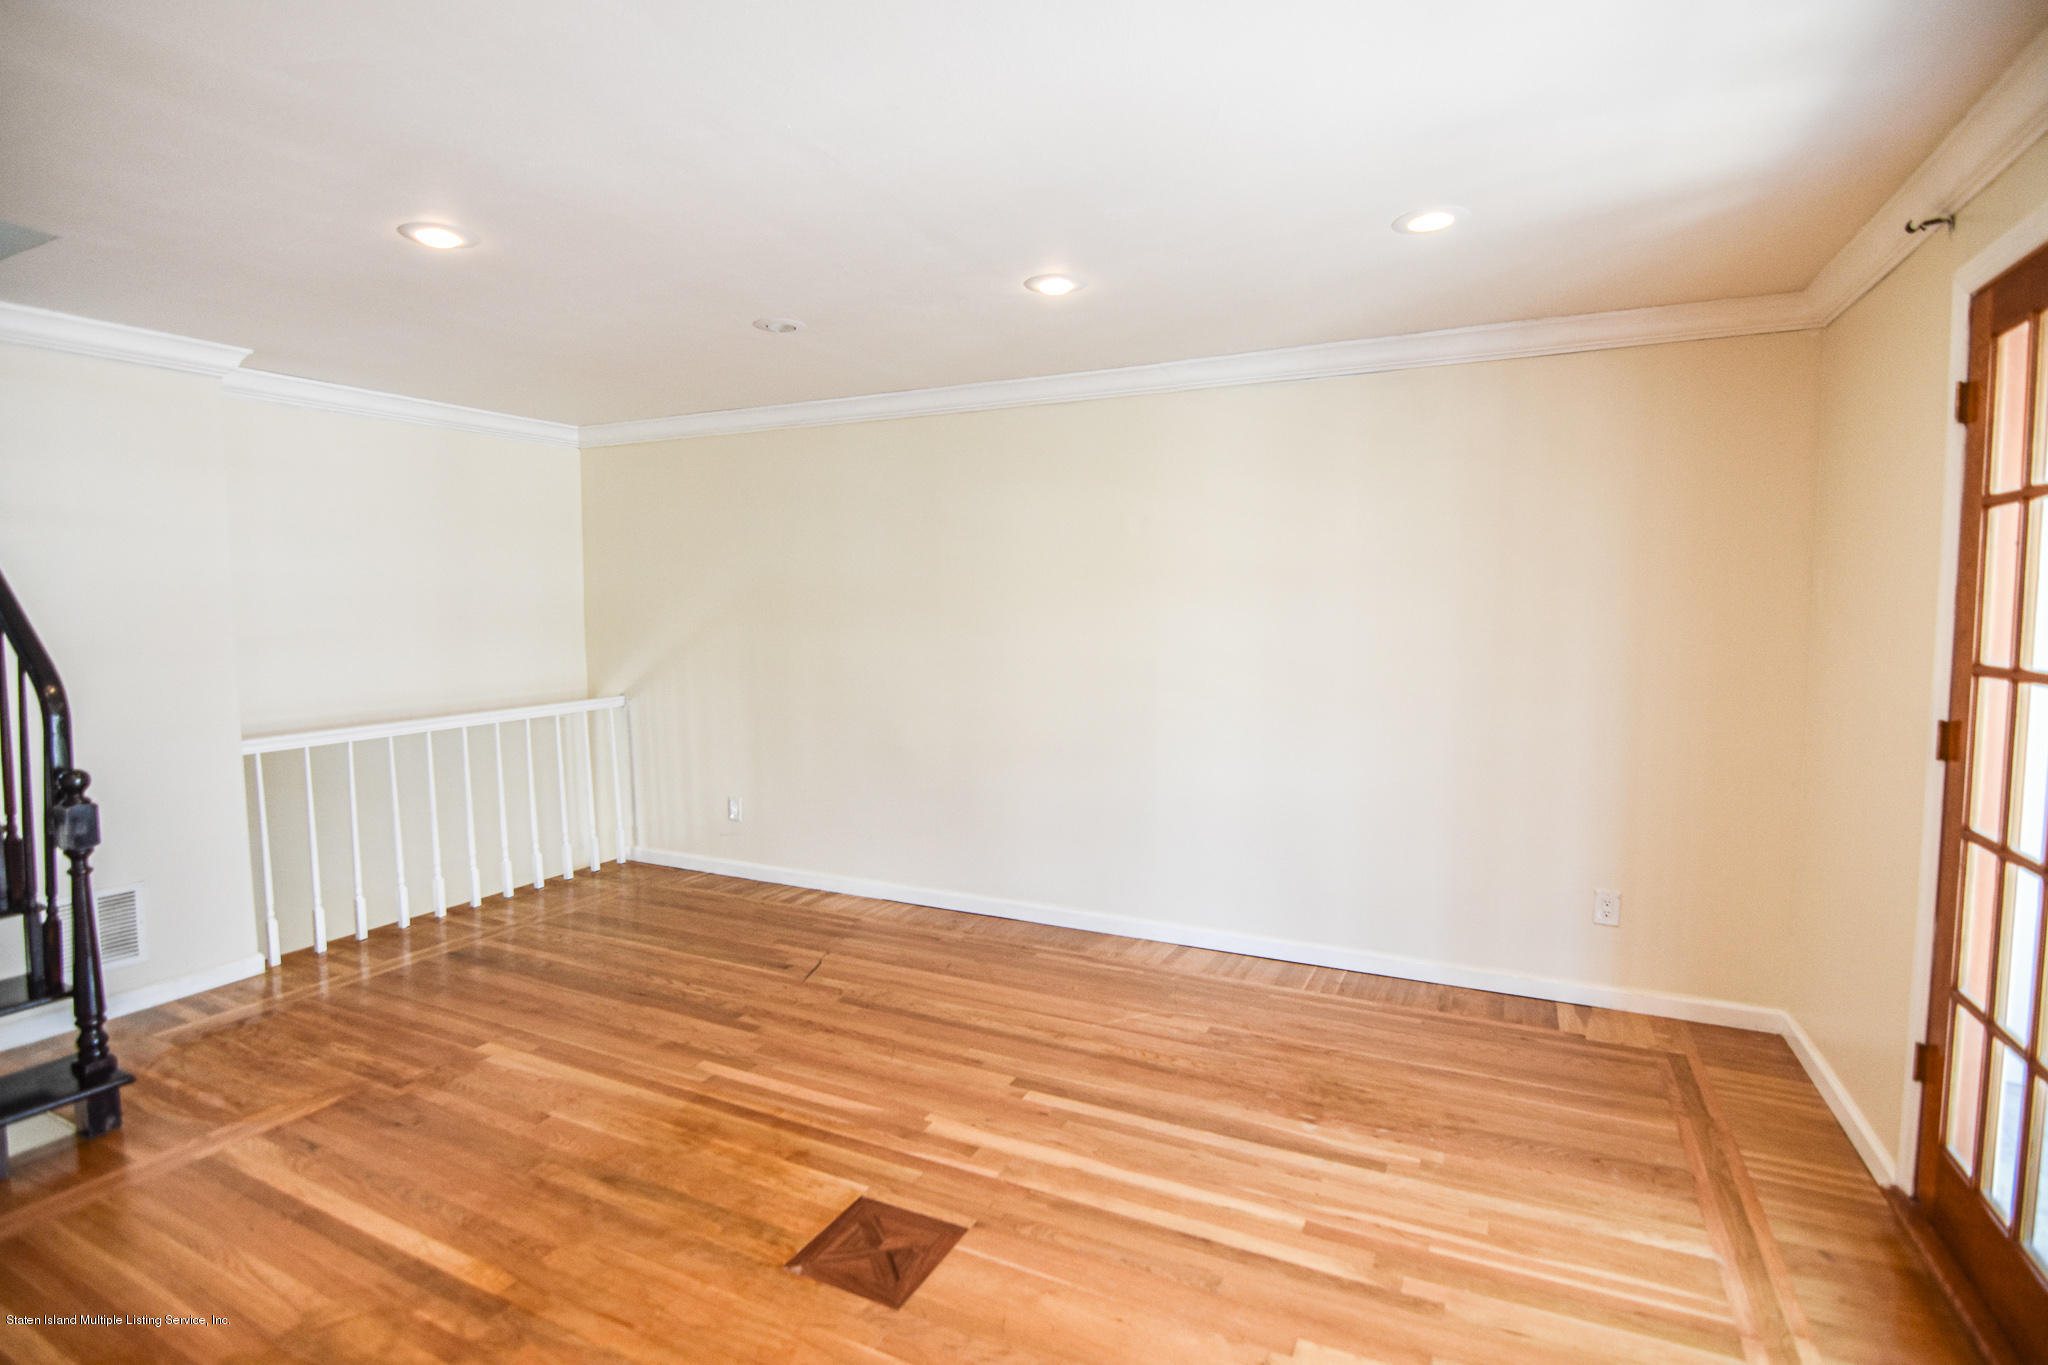 Single Family - Semi-Attached 12 Ebey Lane  Staten Island, NY 10312, MLS-1131132-10